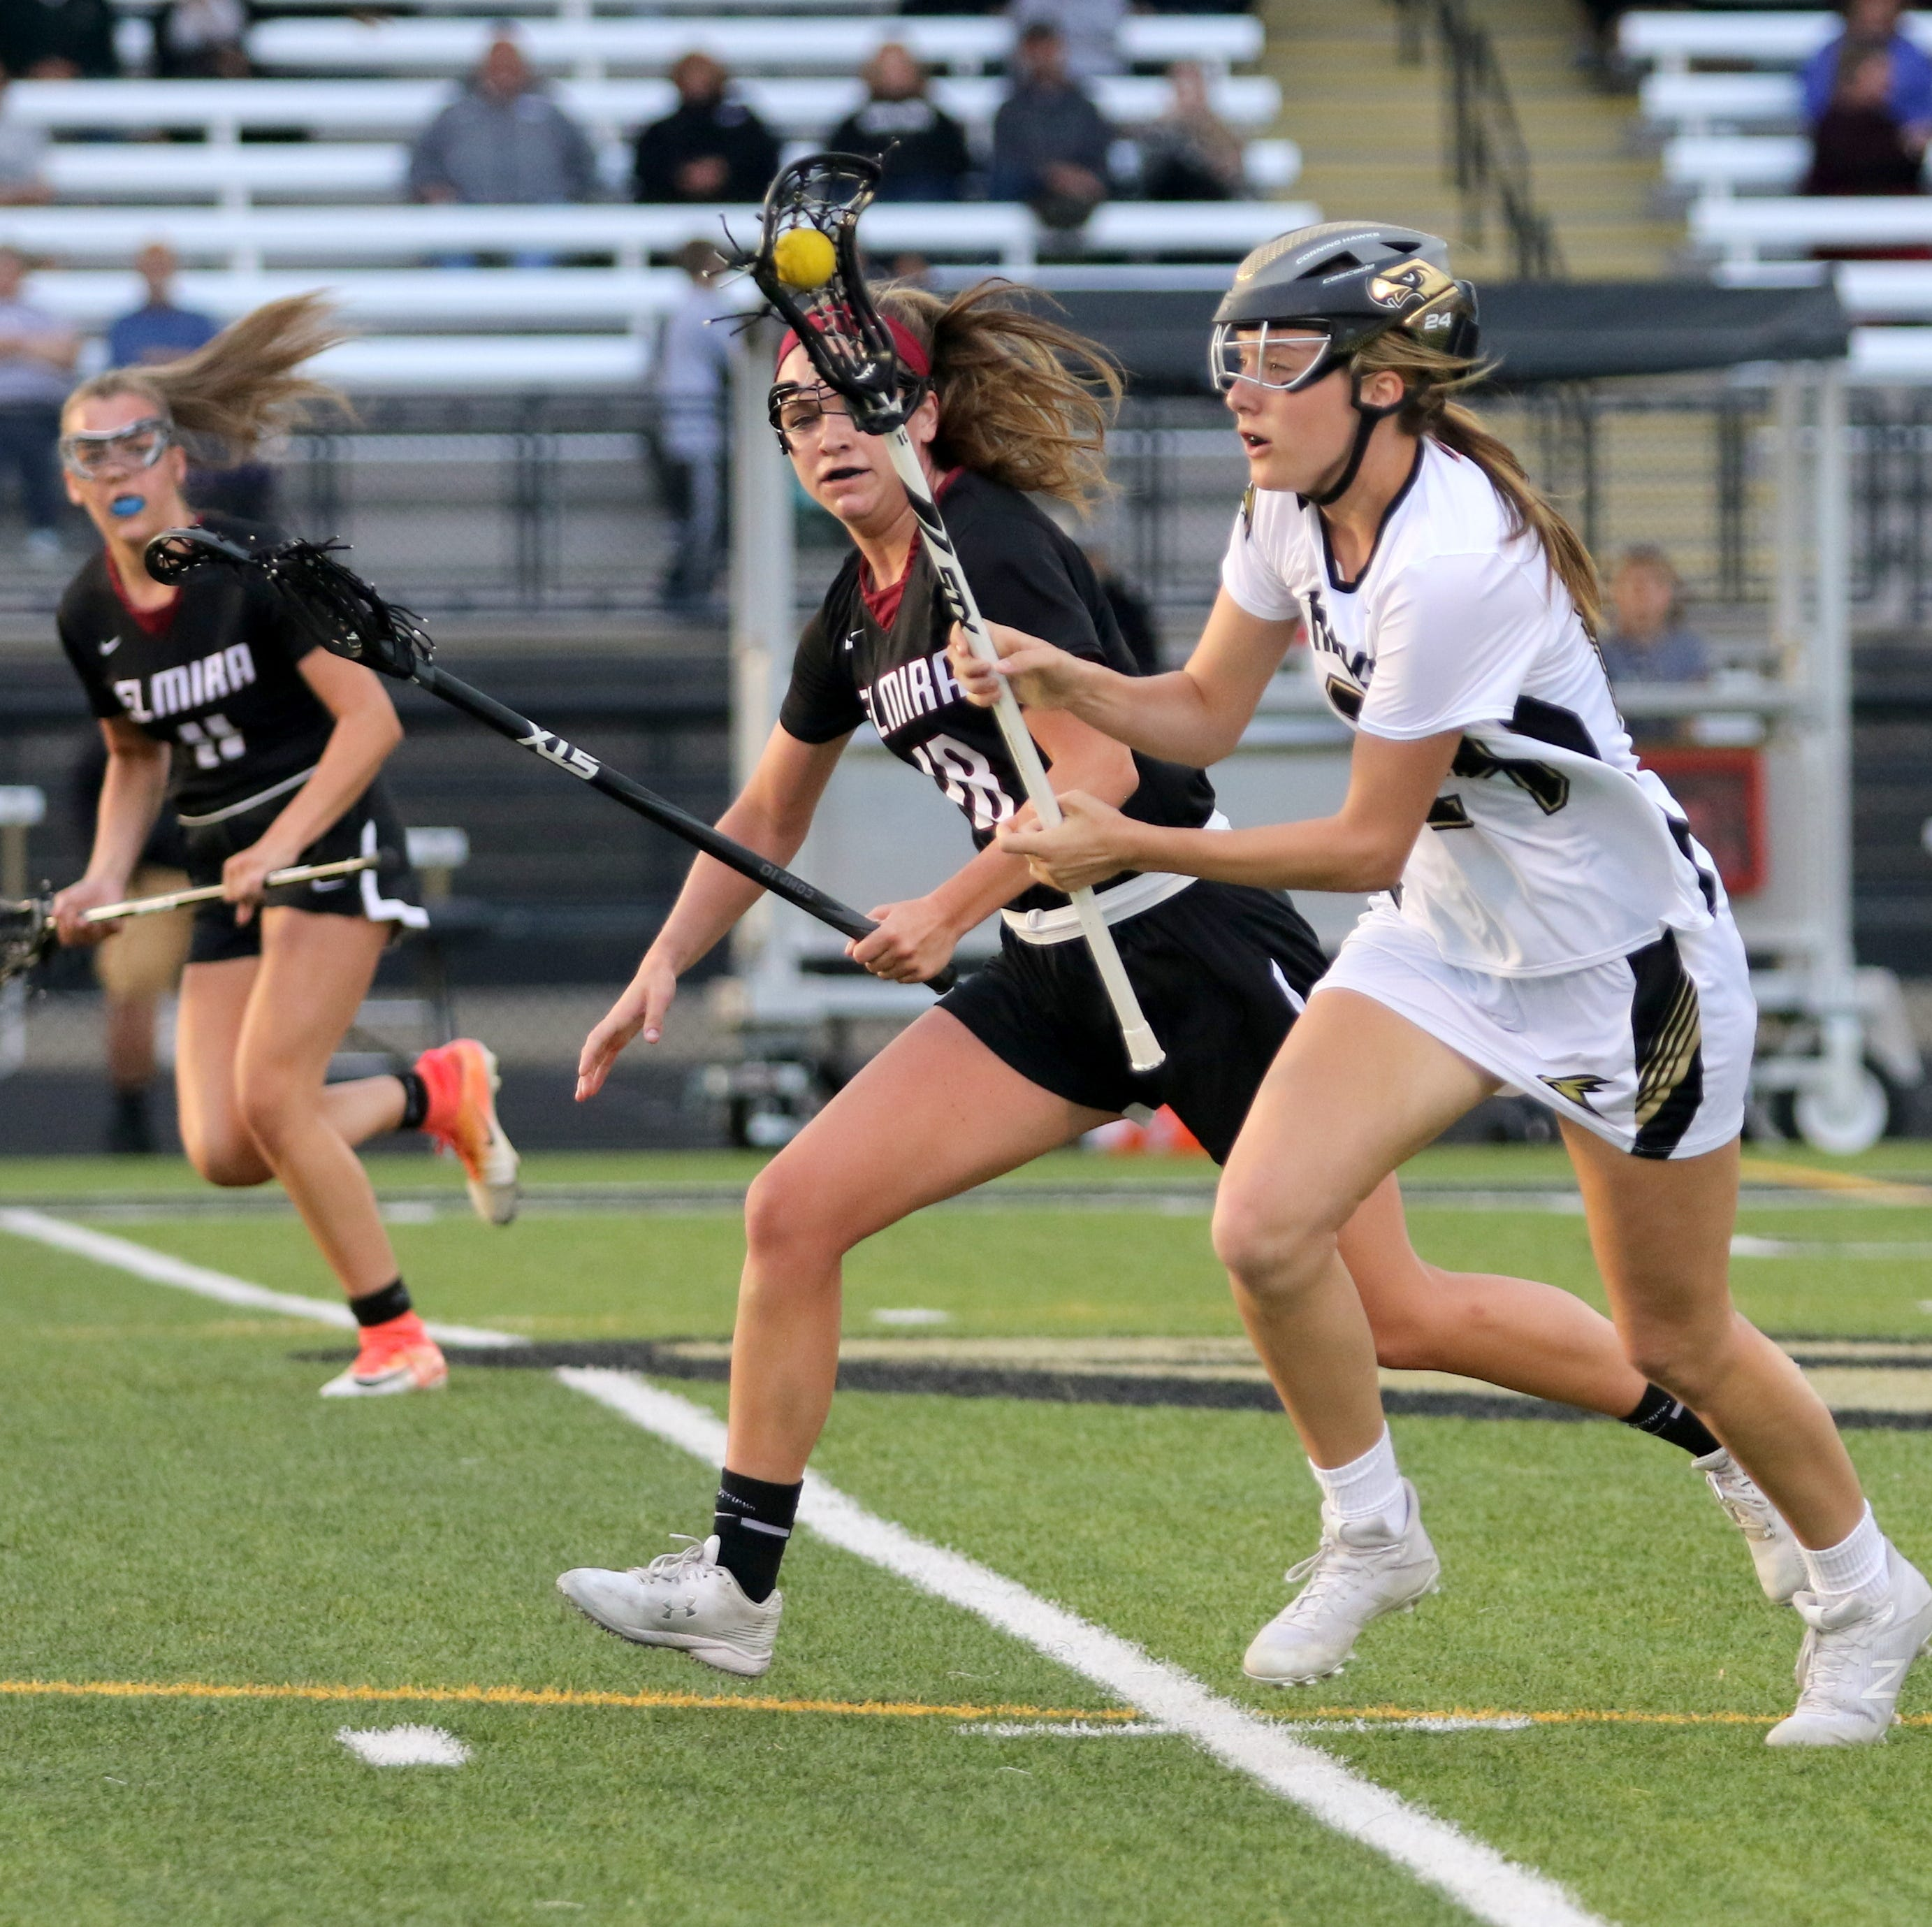 Action from Corning's 17-4 win over Elmira in a Section 4 Class A girls lacrosse semifinal May 20, 2019 at Corning.